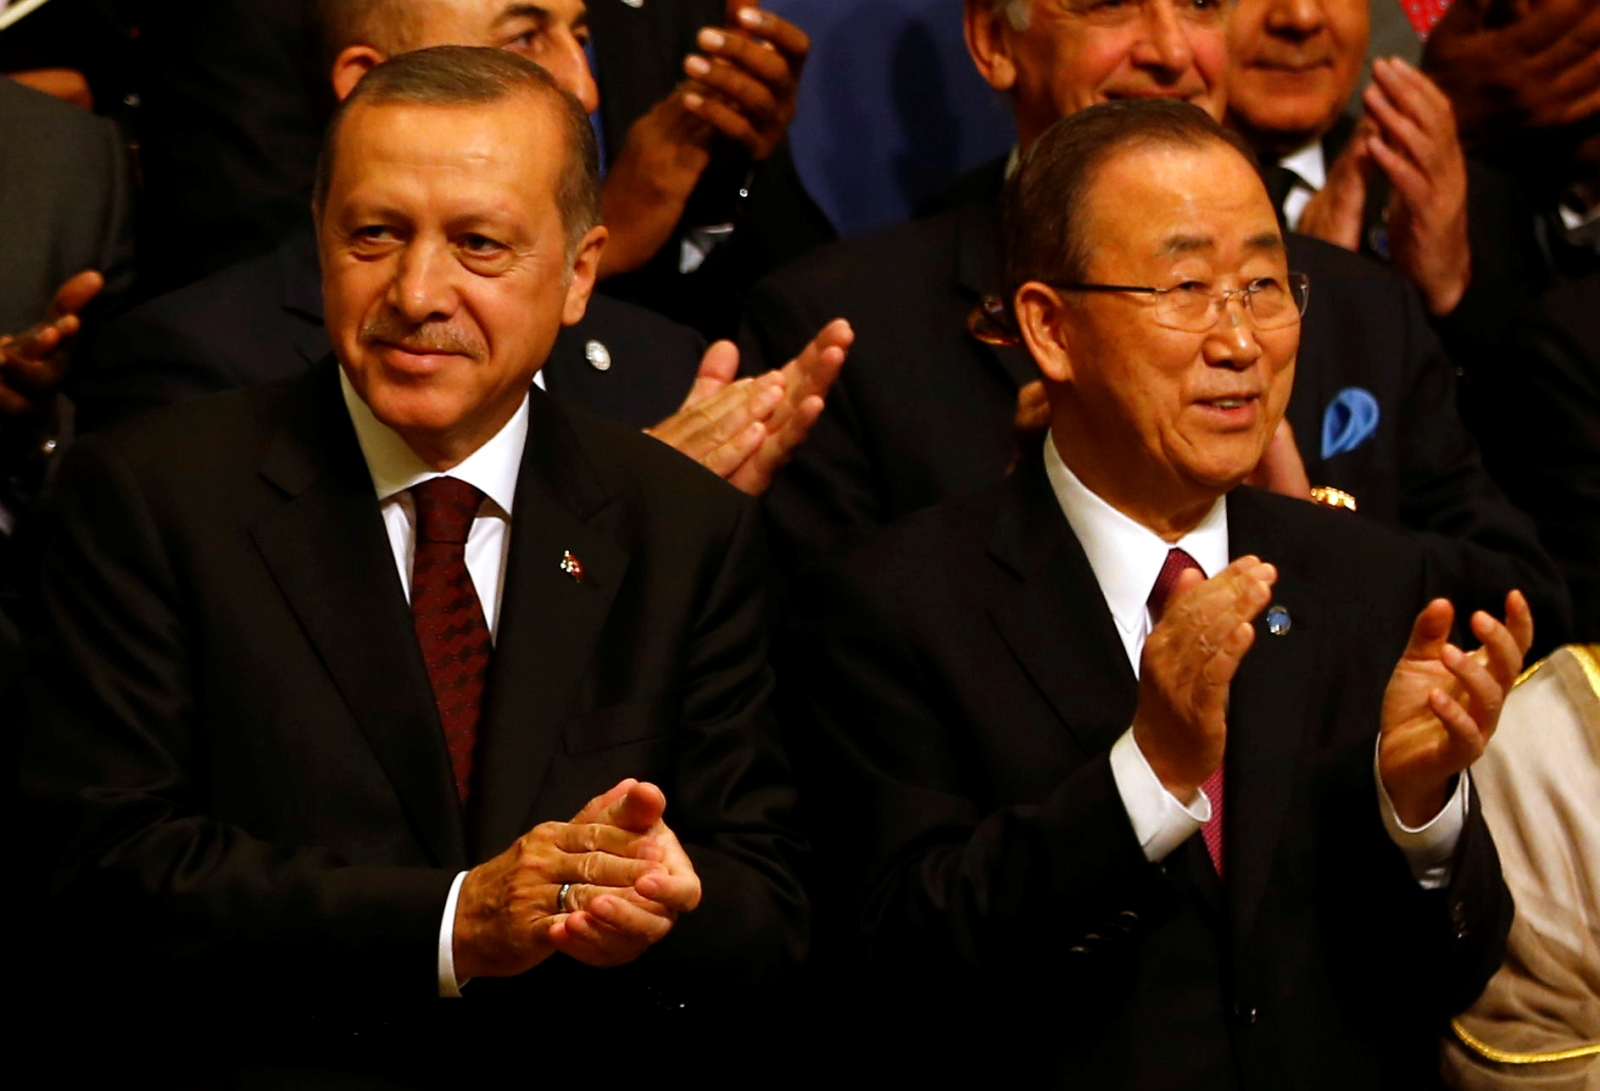 Turkish President Tayyip Erdogan and U.N. Secretary-General Ban Ki-moon